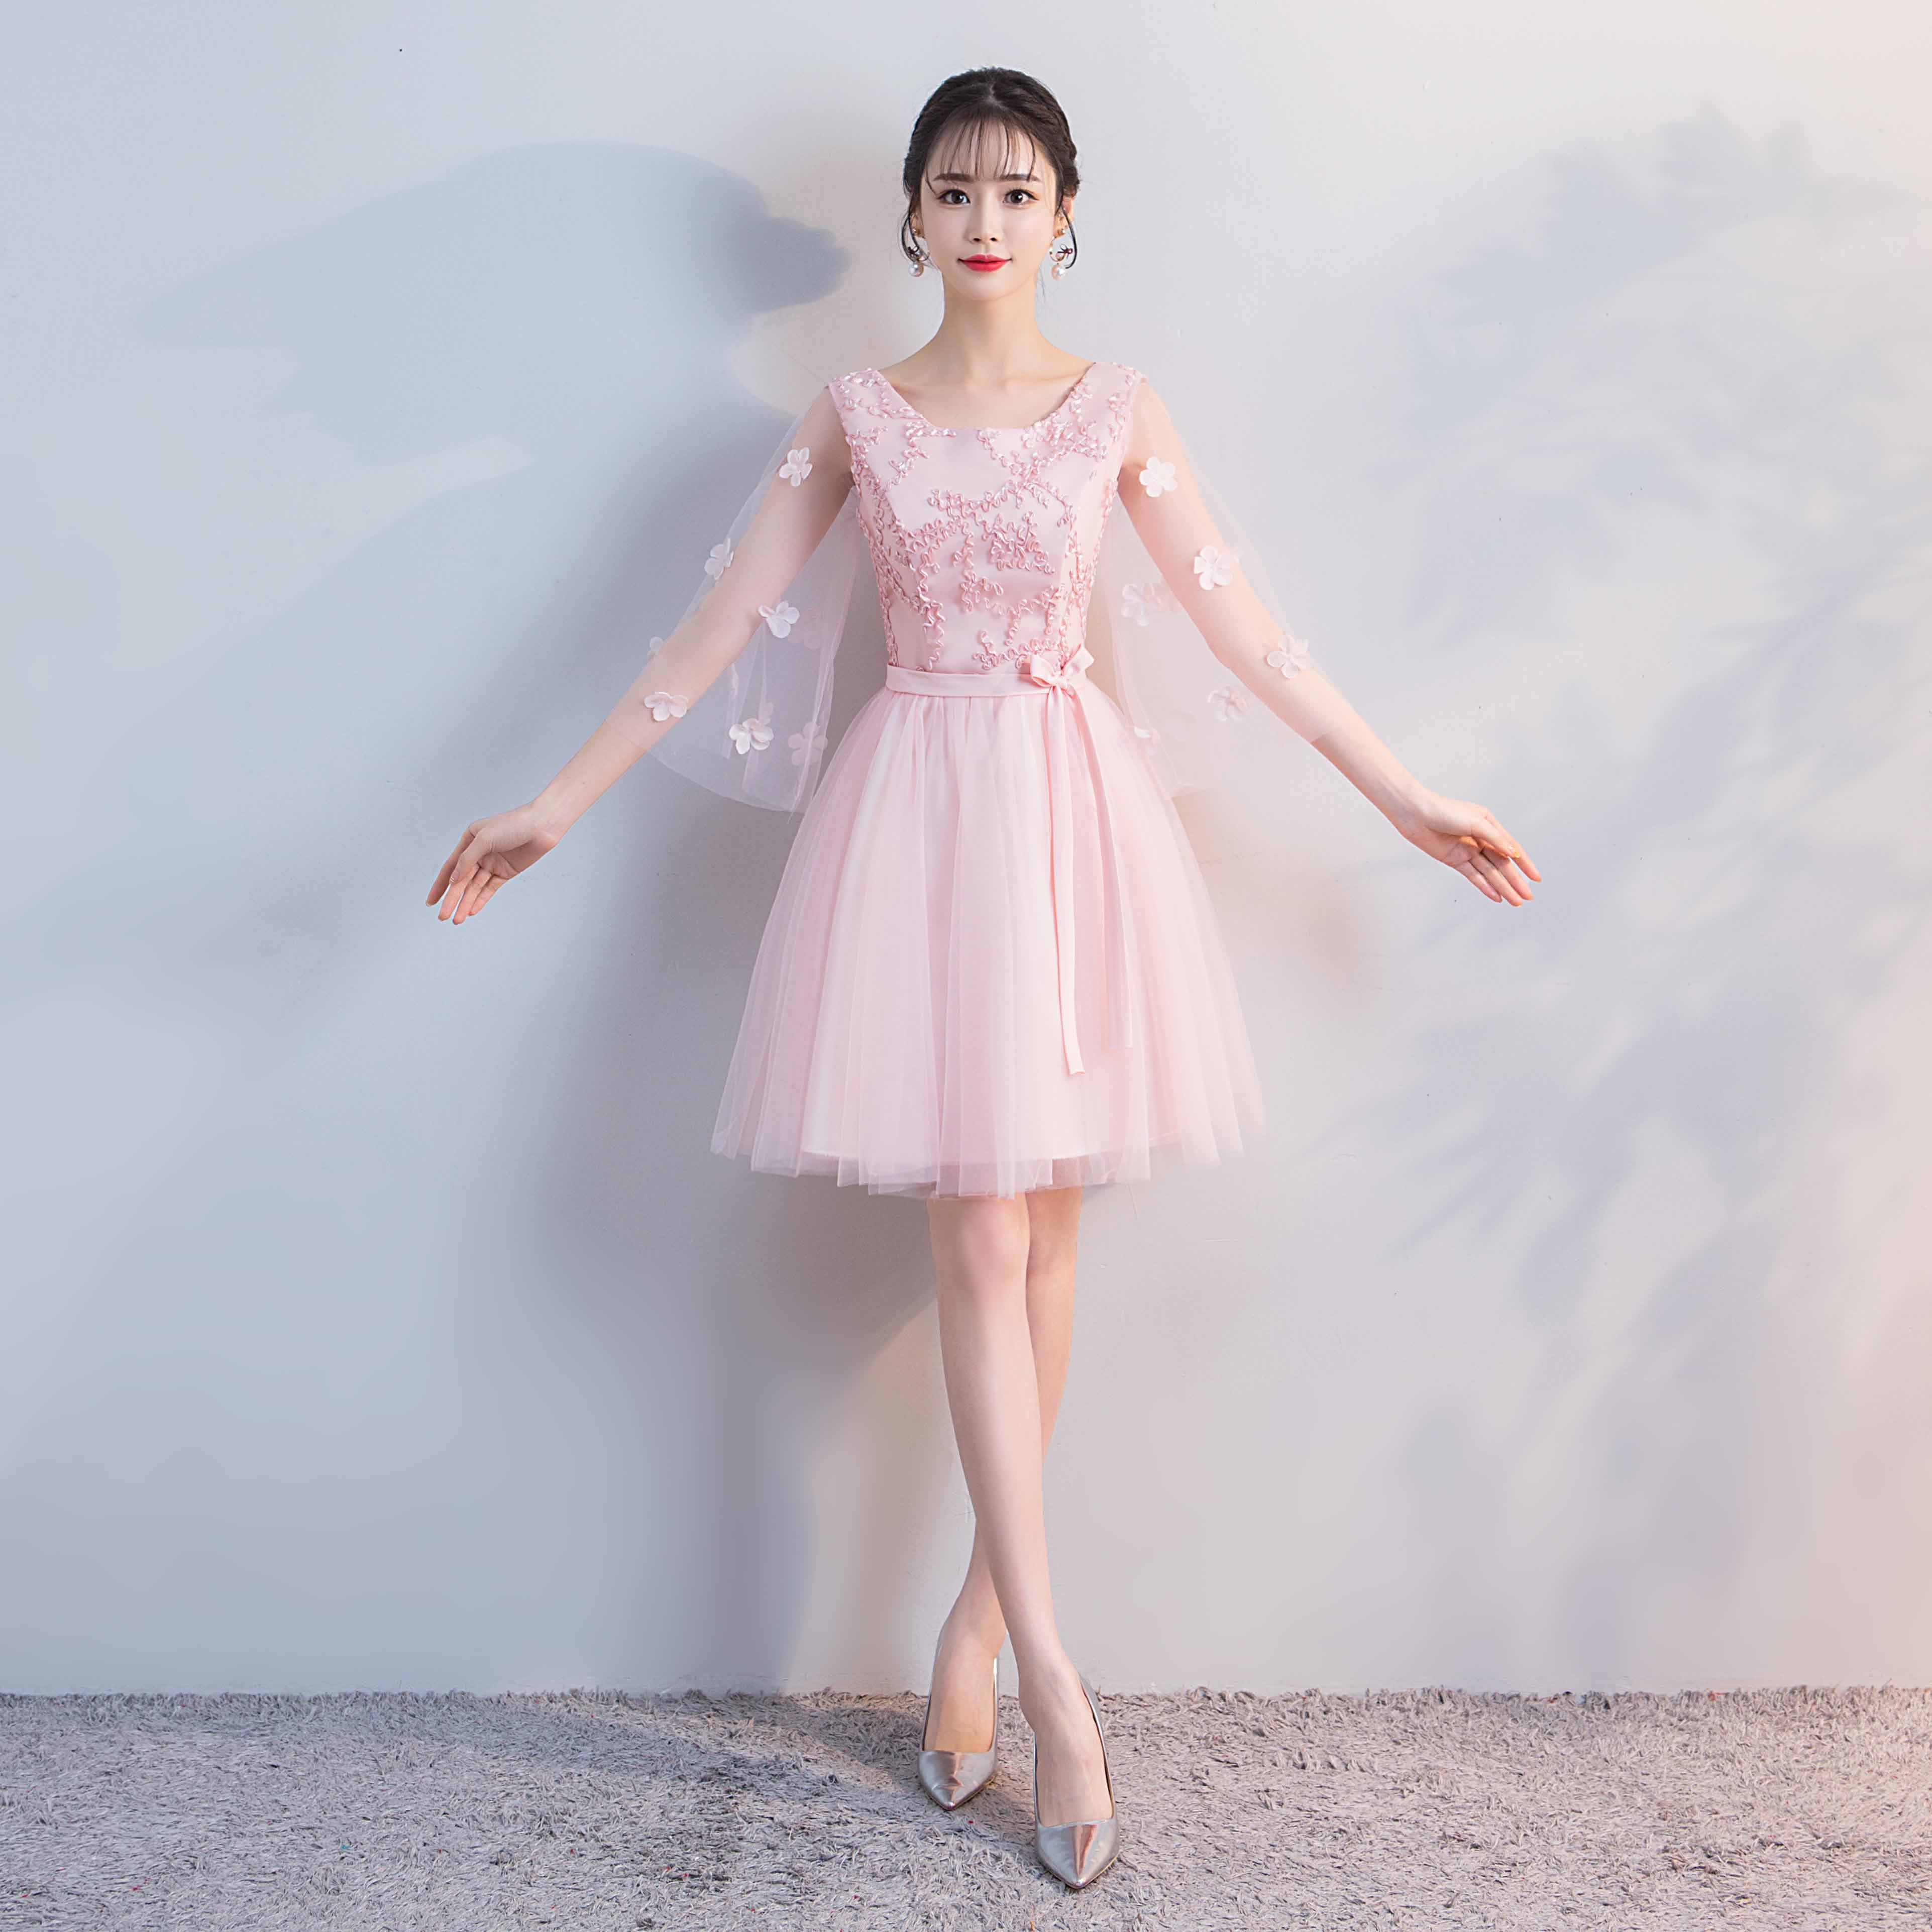 754deb067a05 Bridesmaid dress female short section 2019 new Korean version of ...